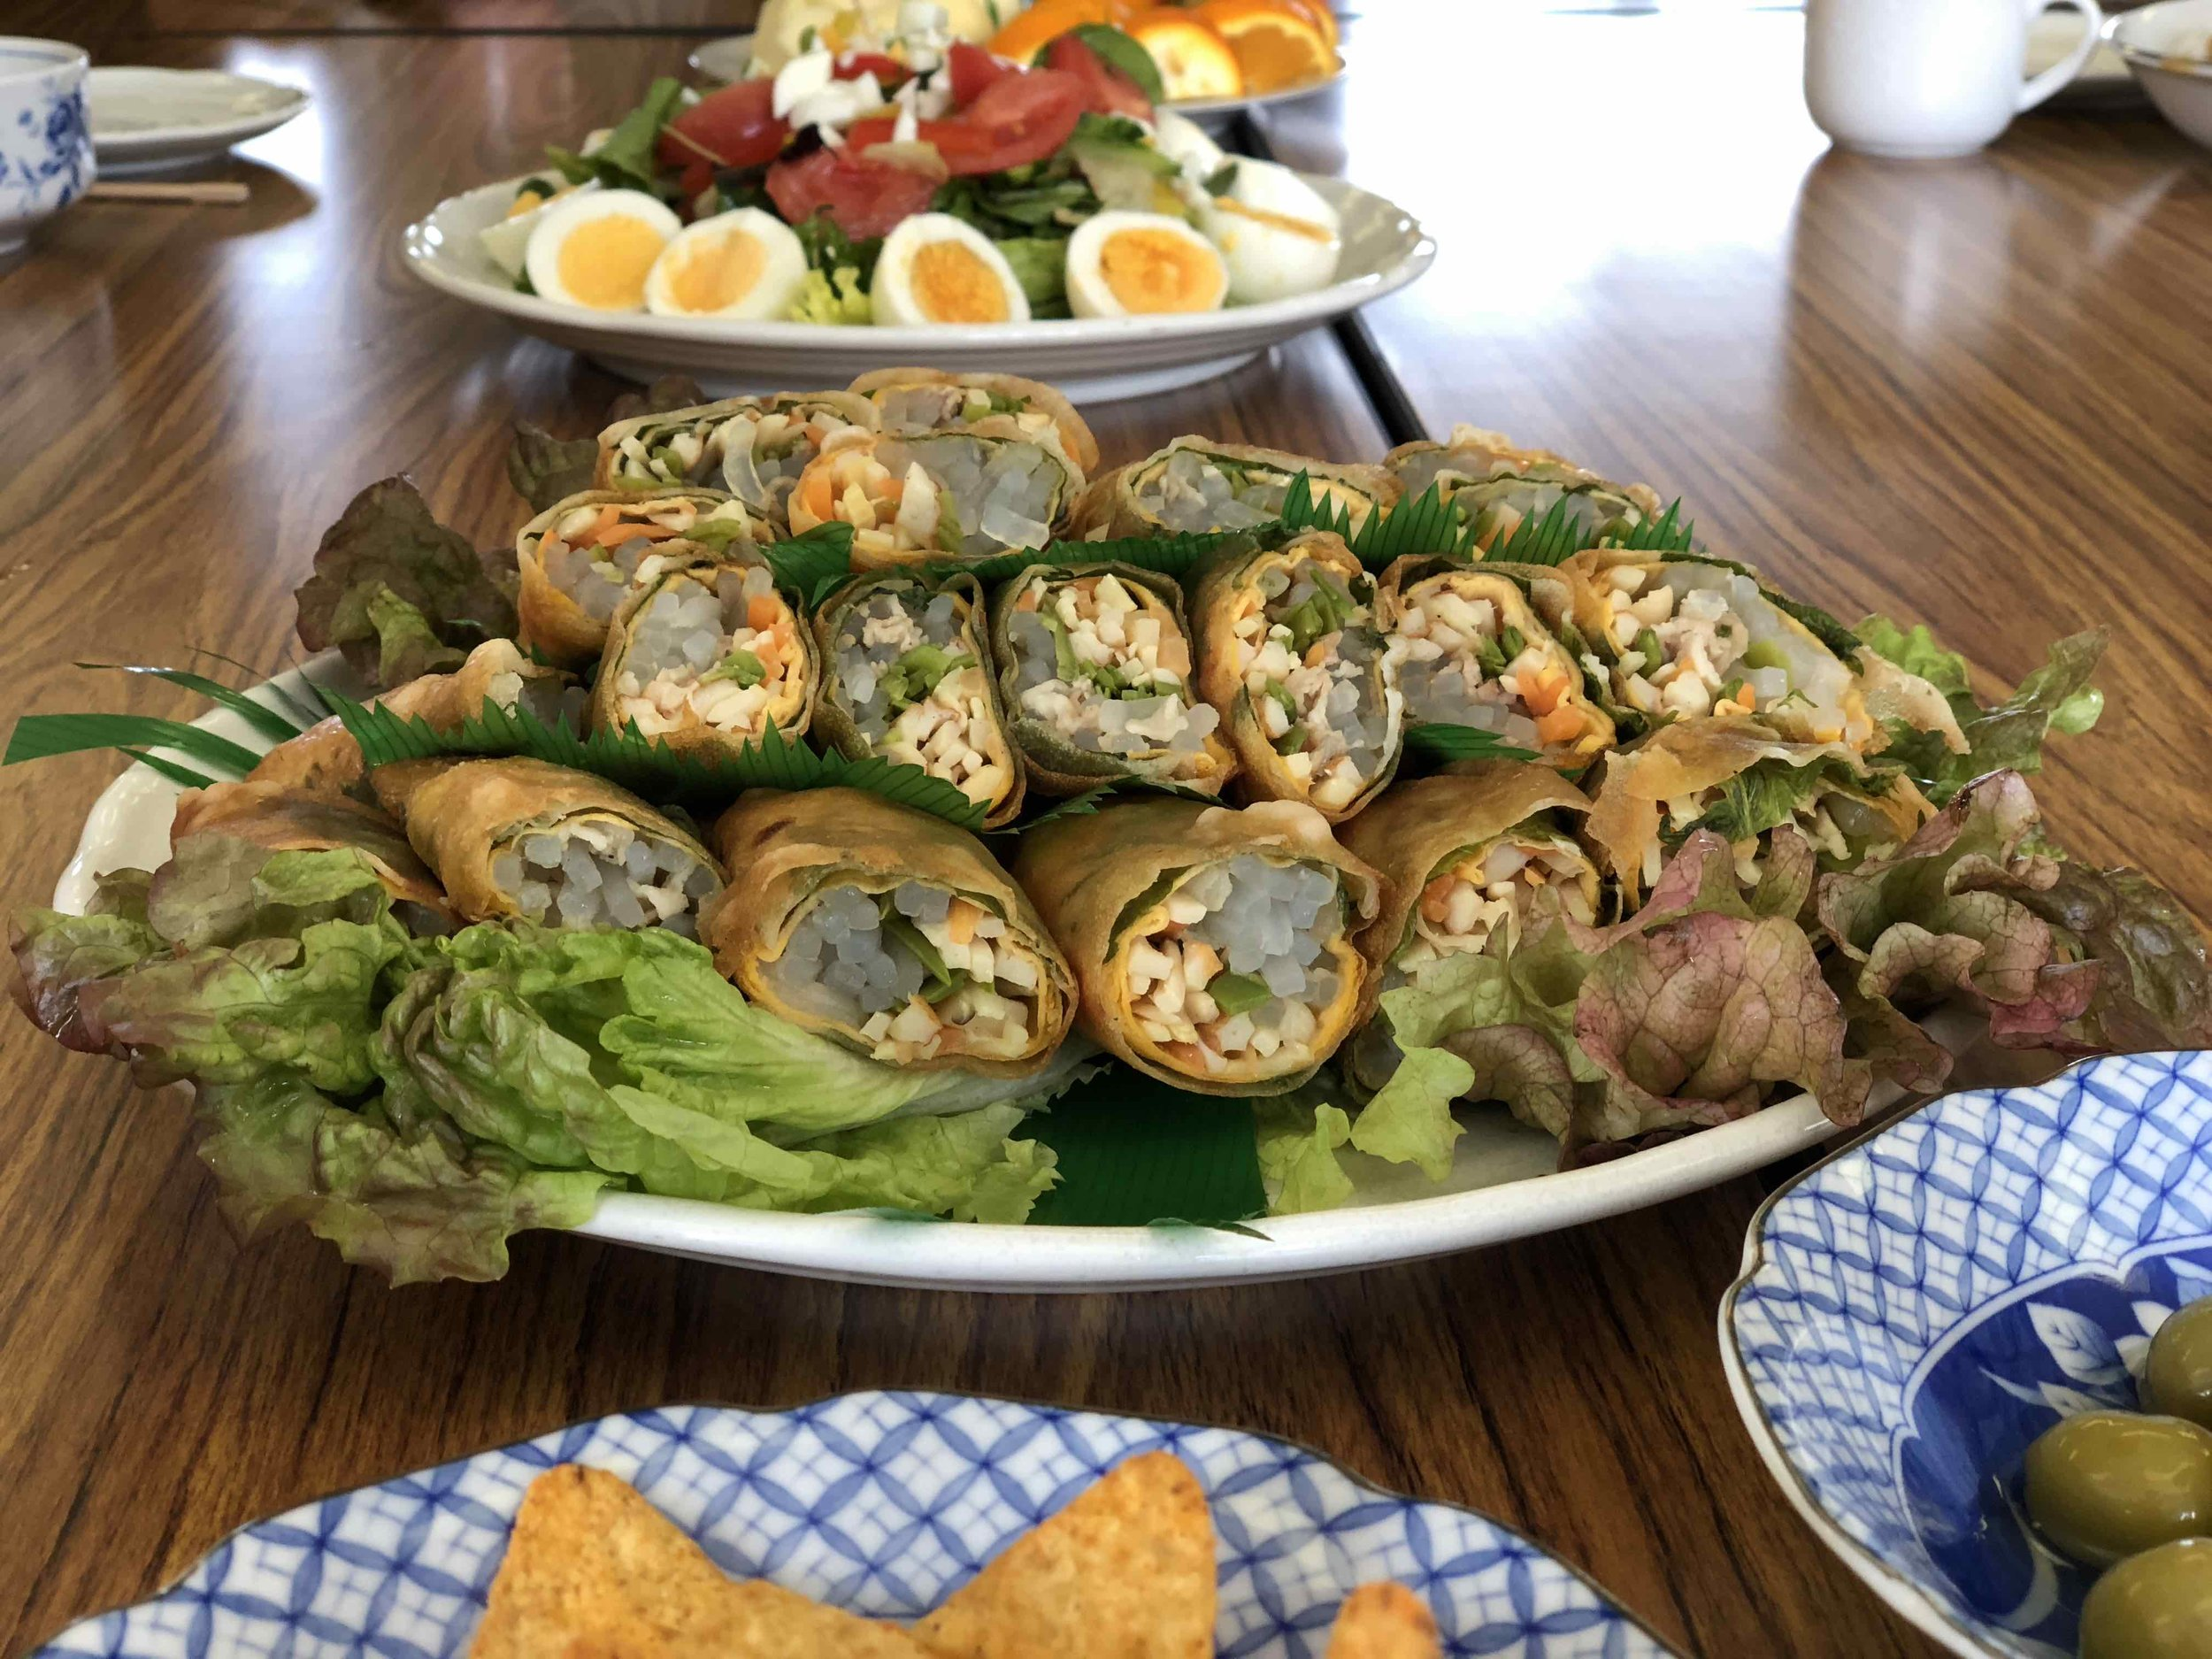 Lots of interesting and new foods! This is a colorful spring roll appetizer at church.